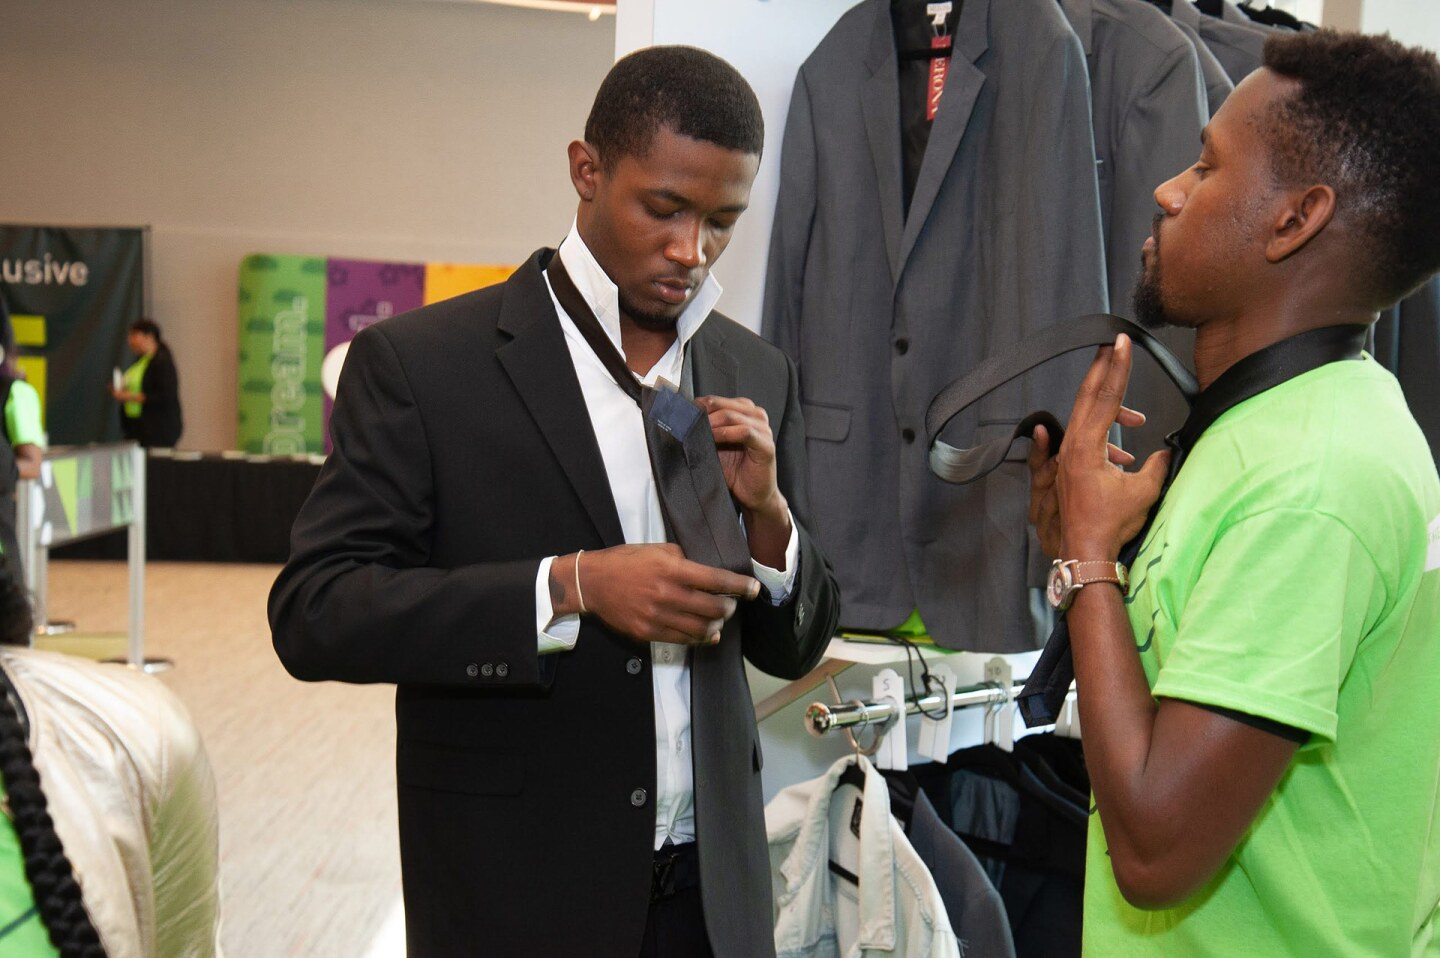 A young man teaches another young man how to tie a tie. | Courtesy of LeadersUp